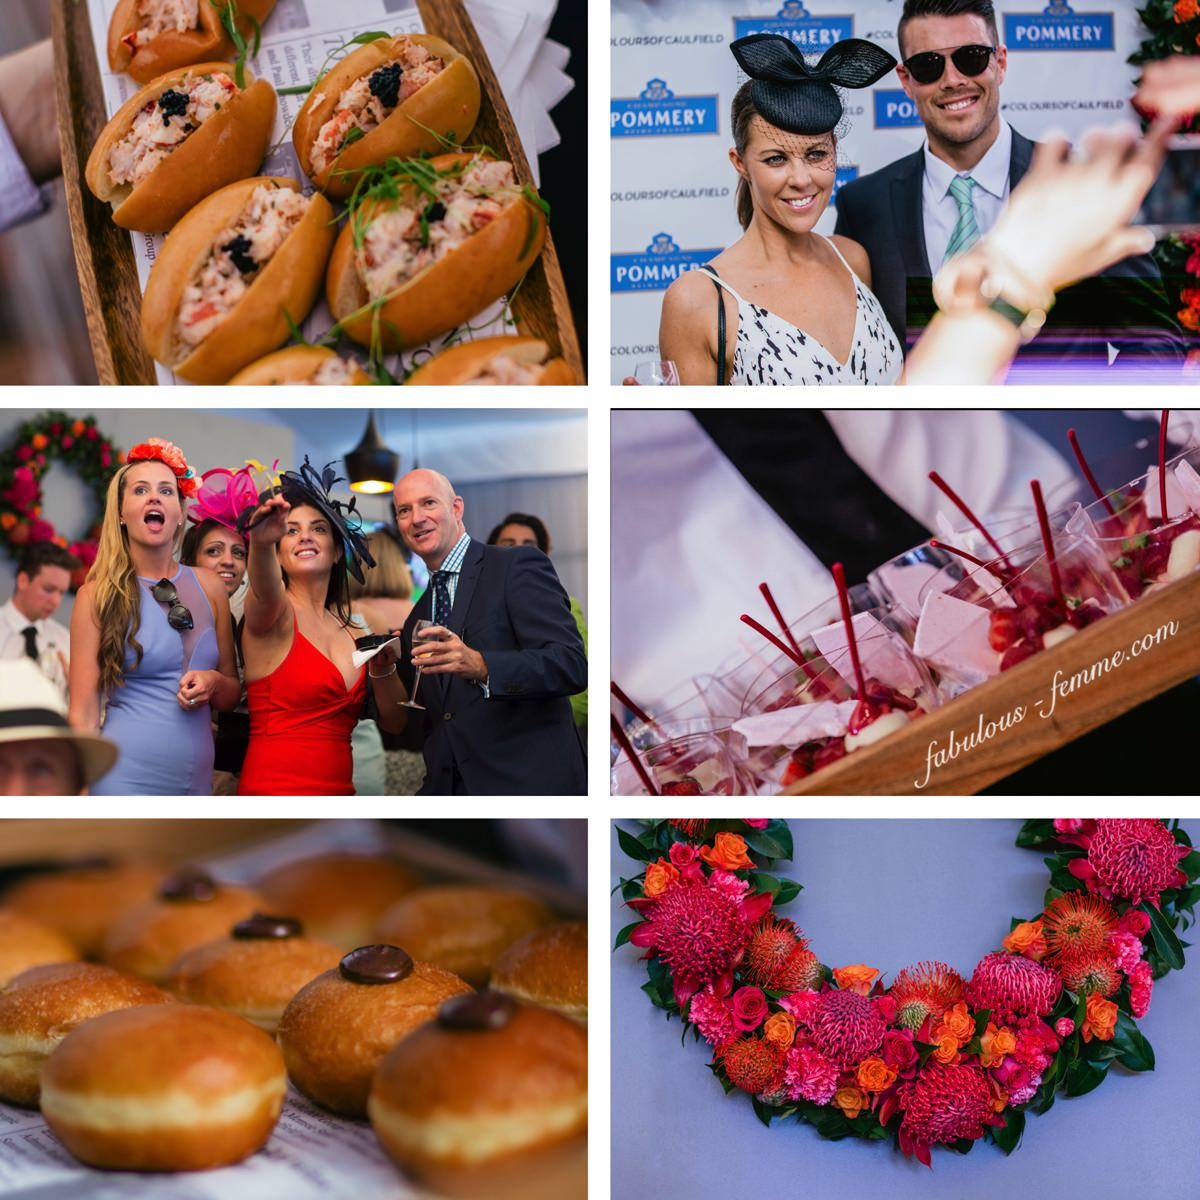 the best of melbourne racing in Caulfield  - The stylish start of the Melbourne Spring Arcing season